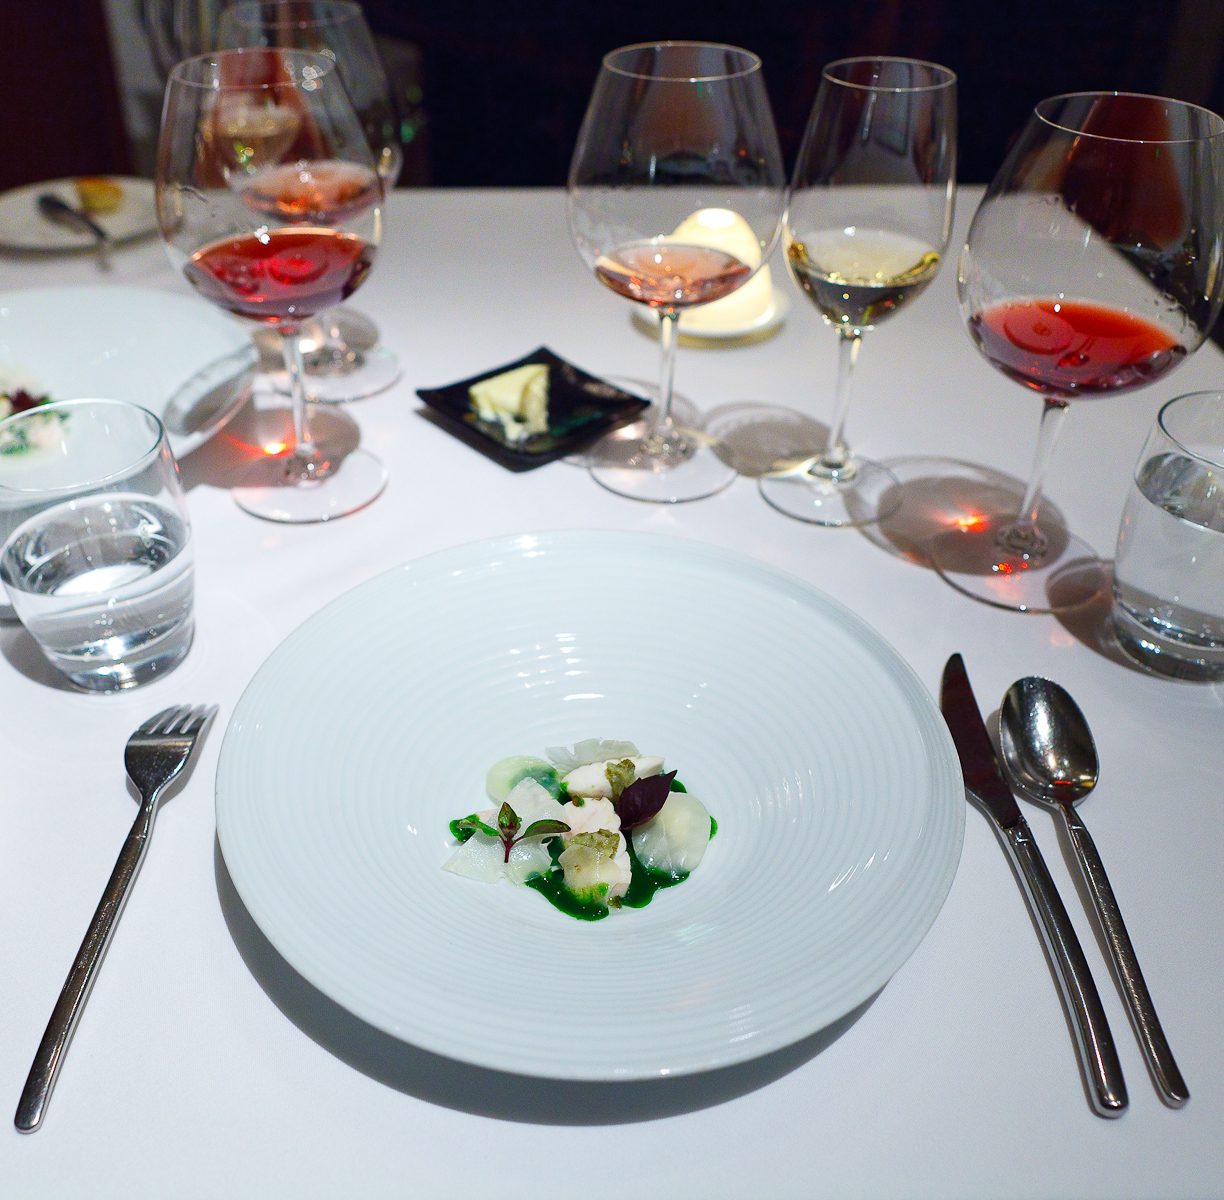 13th Course: Poached halibut served with with young celeriac, romanesco